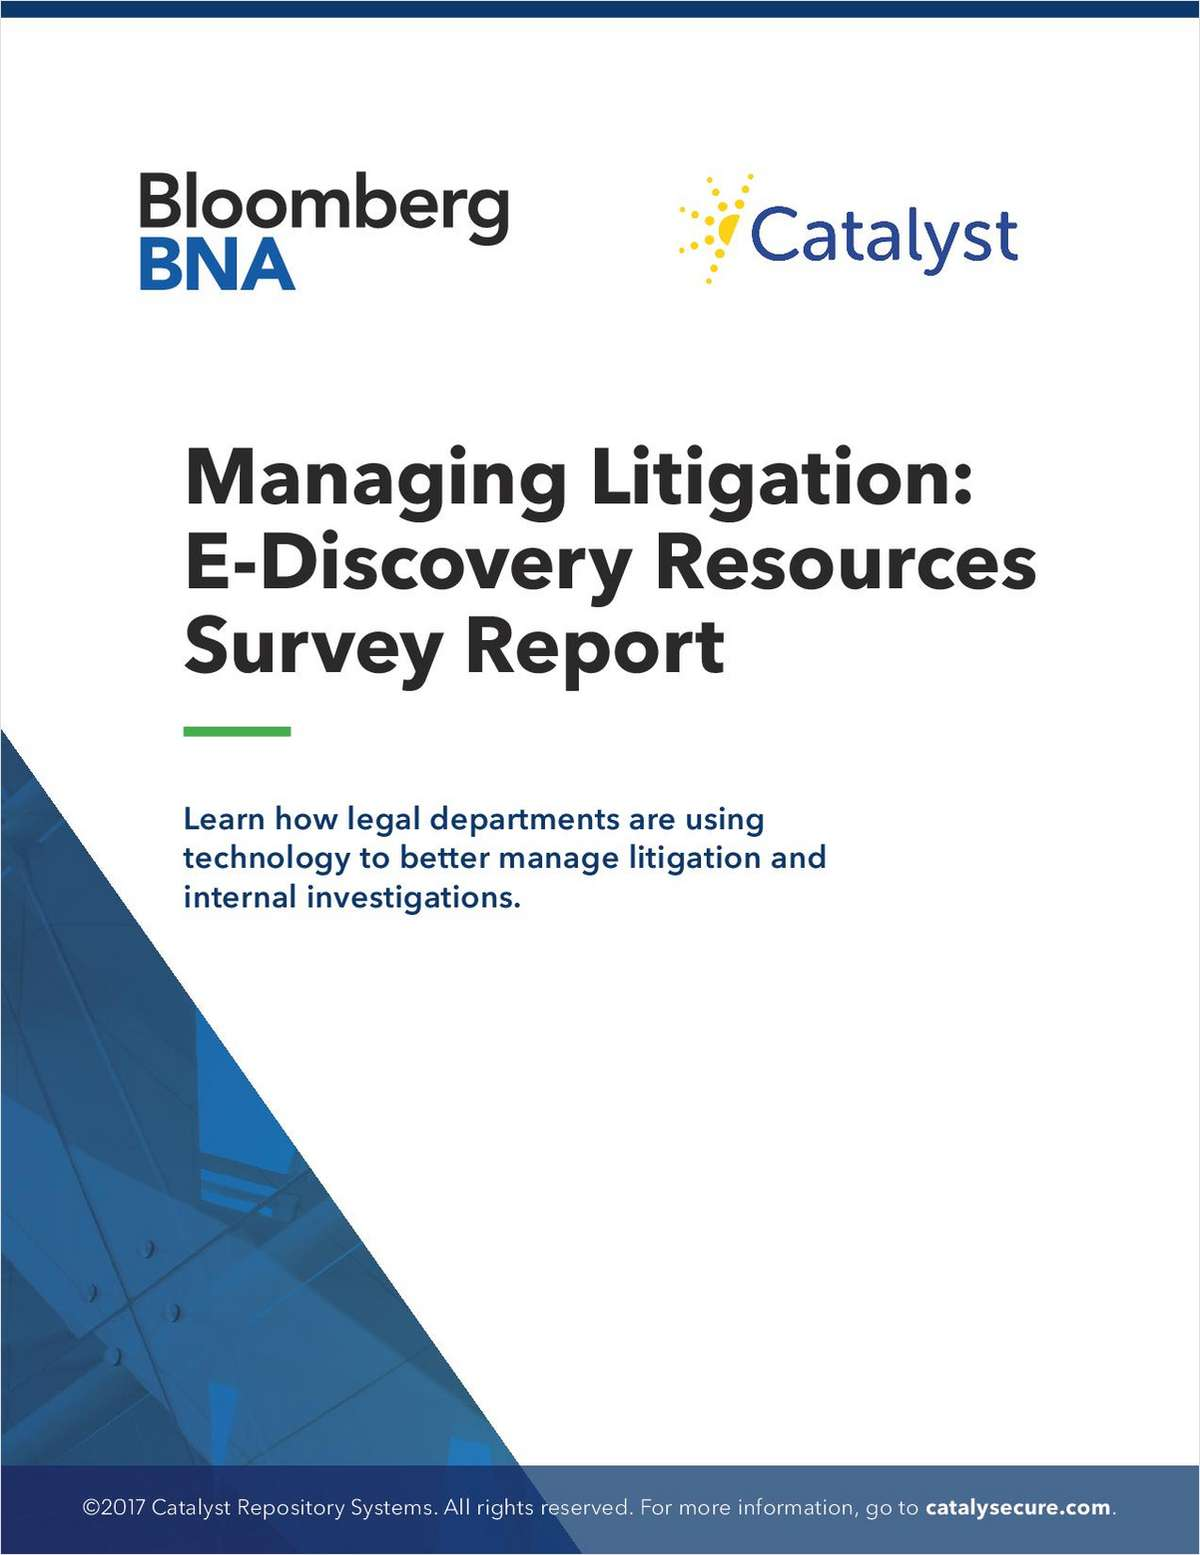 Managing Litigation: E-Discovery Resources Survey Report